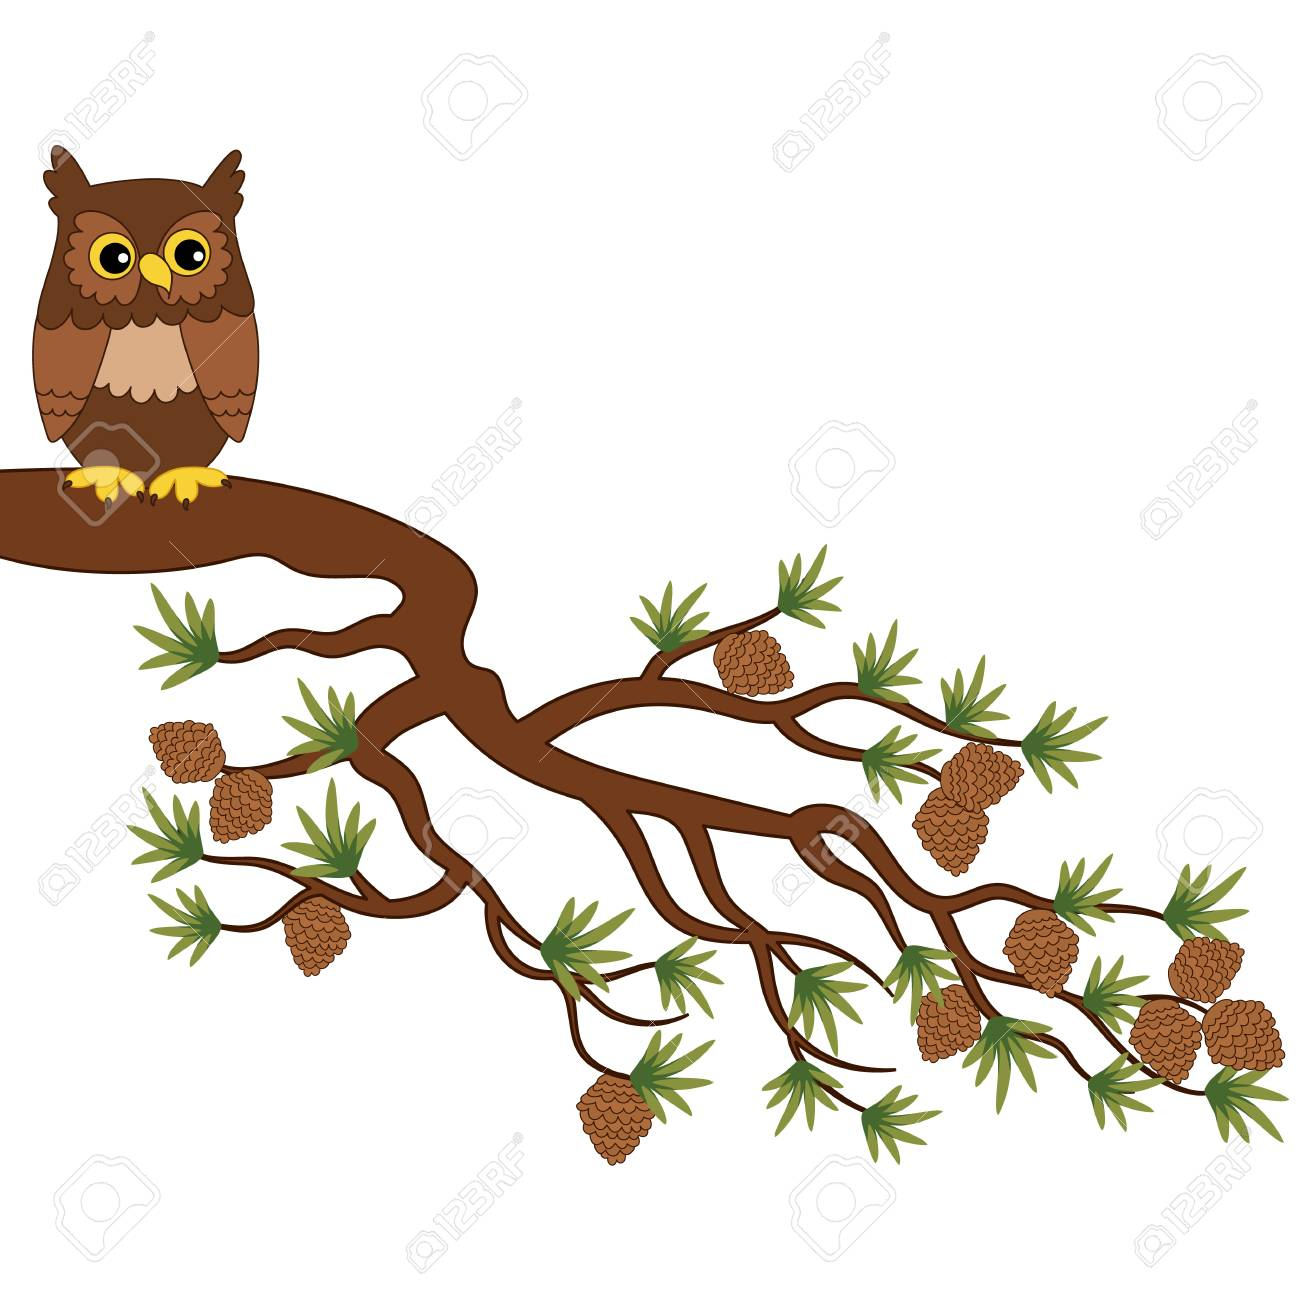 Vector Cute Cartoon Owl Sitting On Pine Tree Branch Royalty Free Cliparts Vectors And Stock Illustration Image 88310399 Choose from 160+ cartoon owl graphic resources and download in the form of png, eps, ai or psd. vector cute cartoon owl sitting on pine tree branch